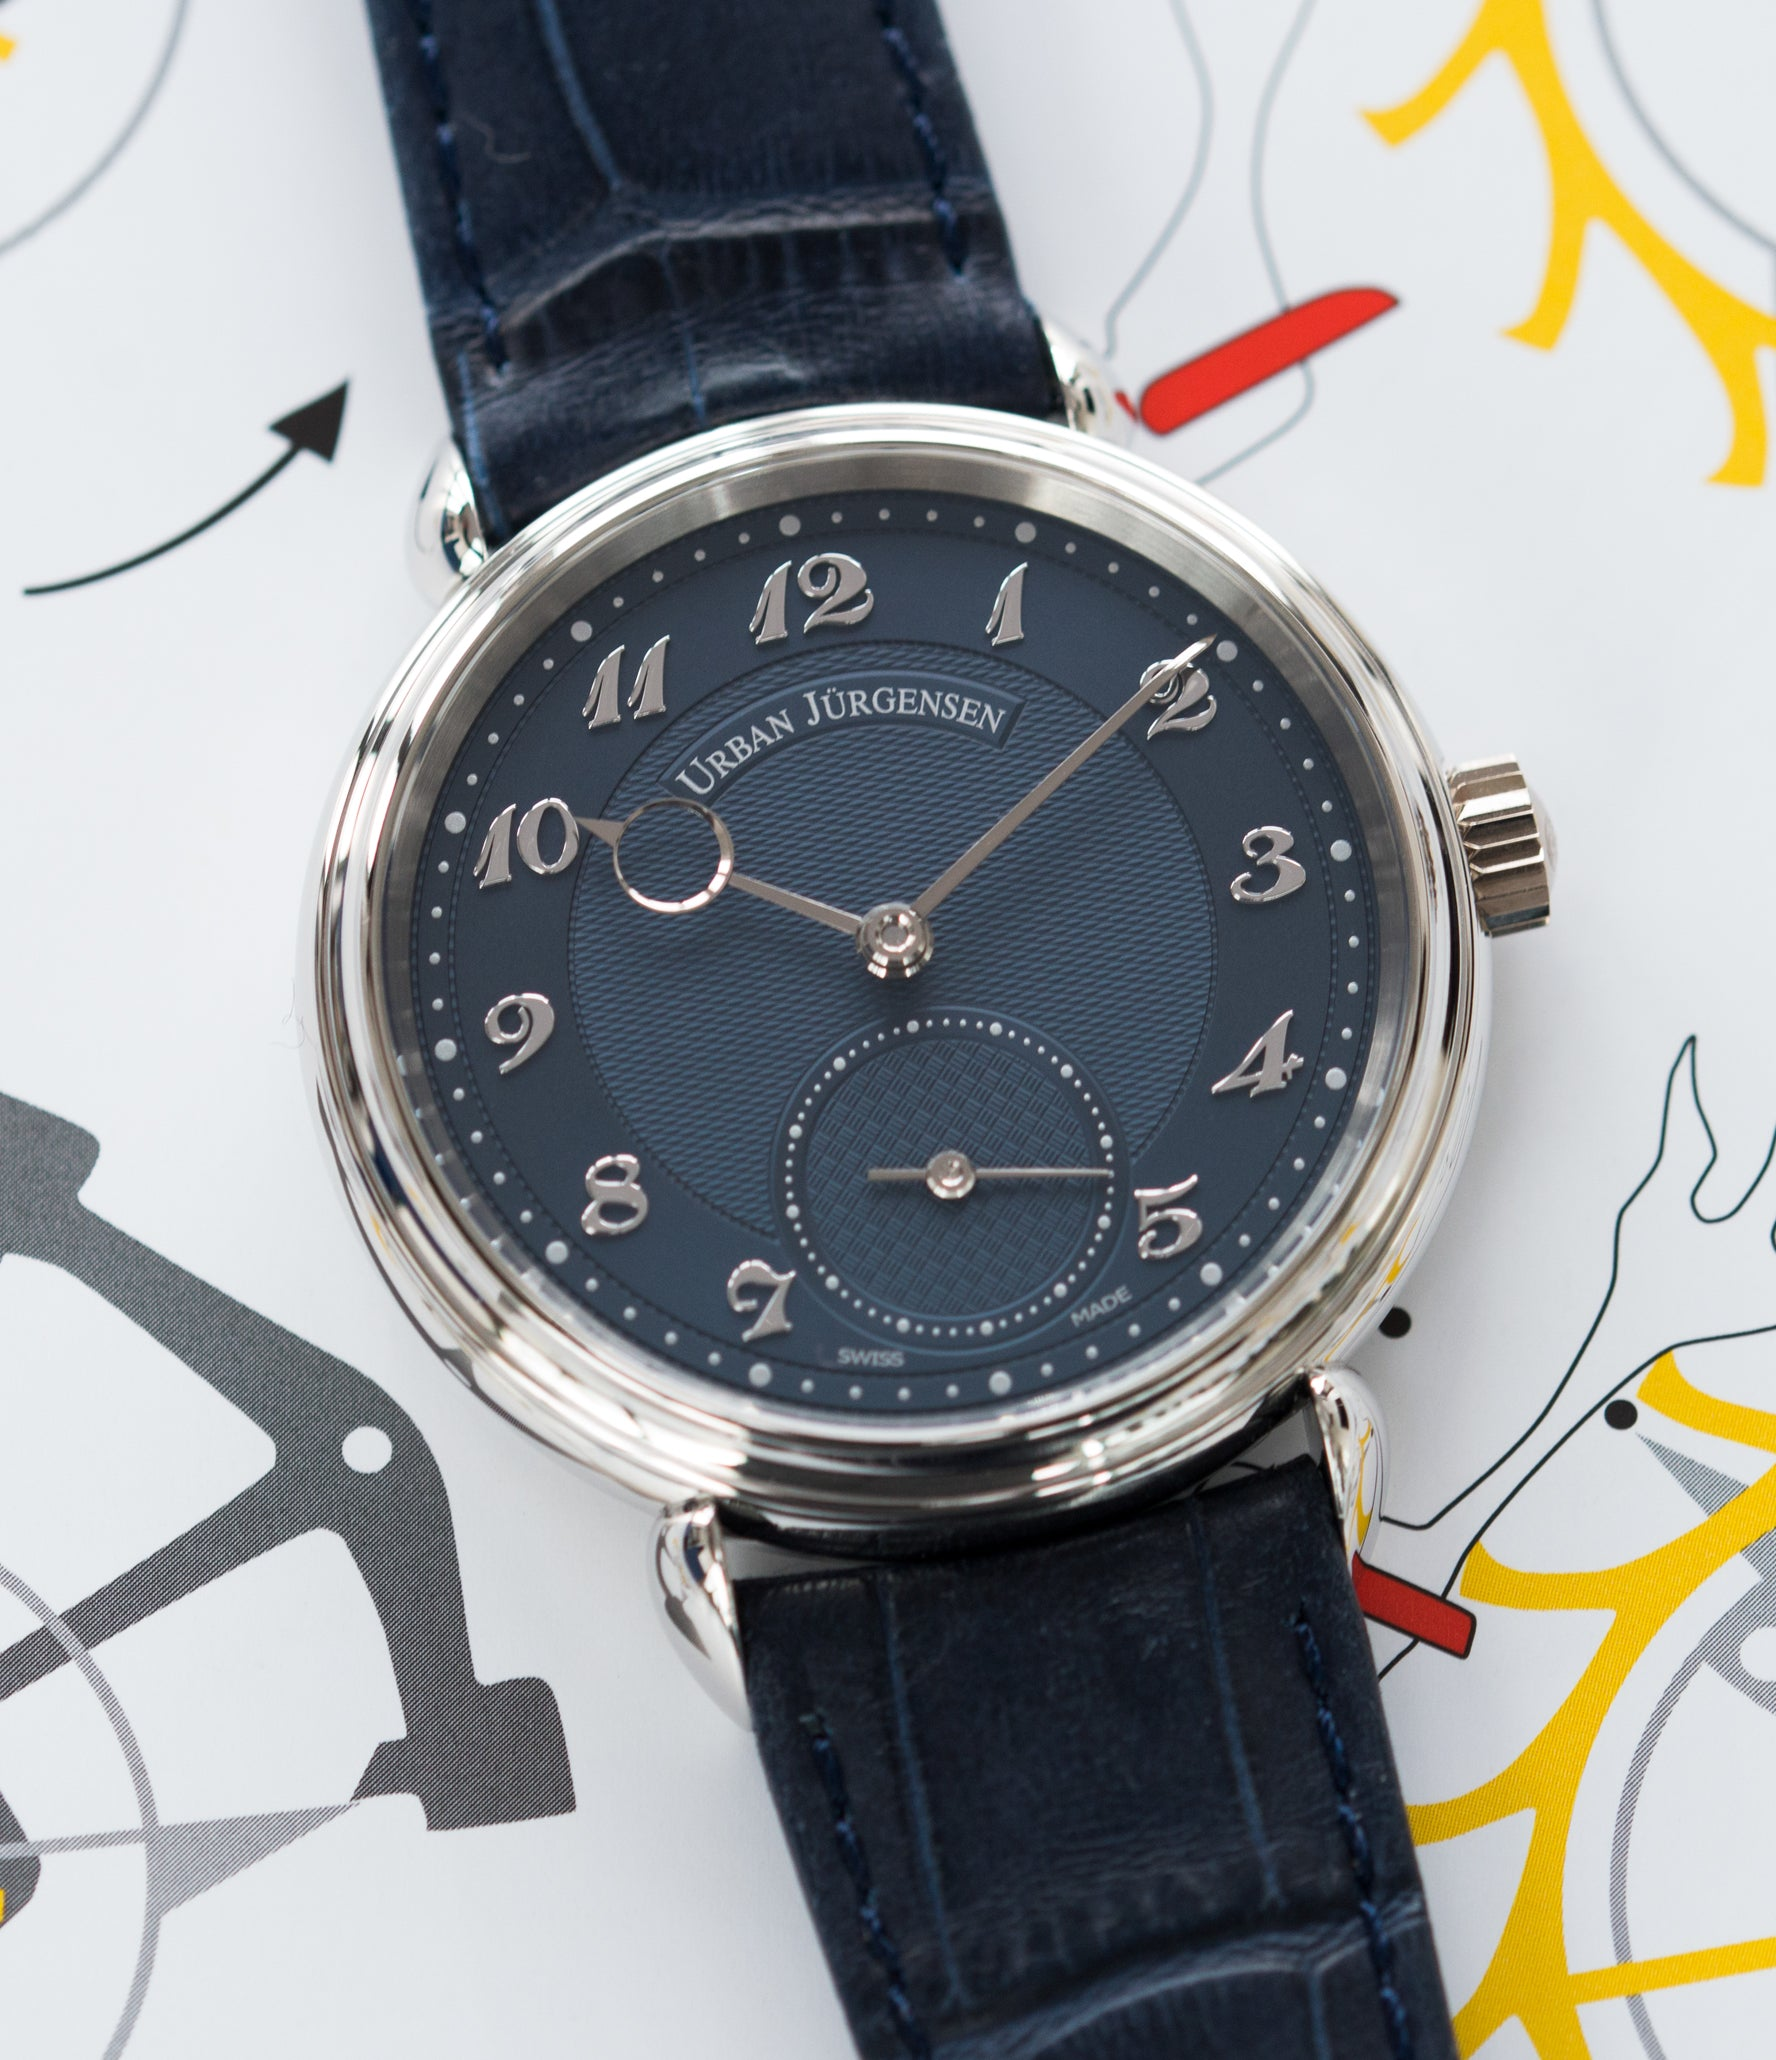 Urban Jurgensen 1140 PT Blue dial watch online at A Collected Man London independent watchmaker specialist authorised retailer in the UK